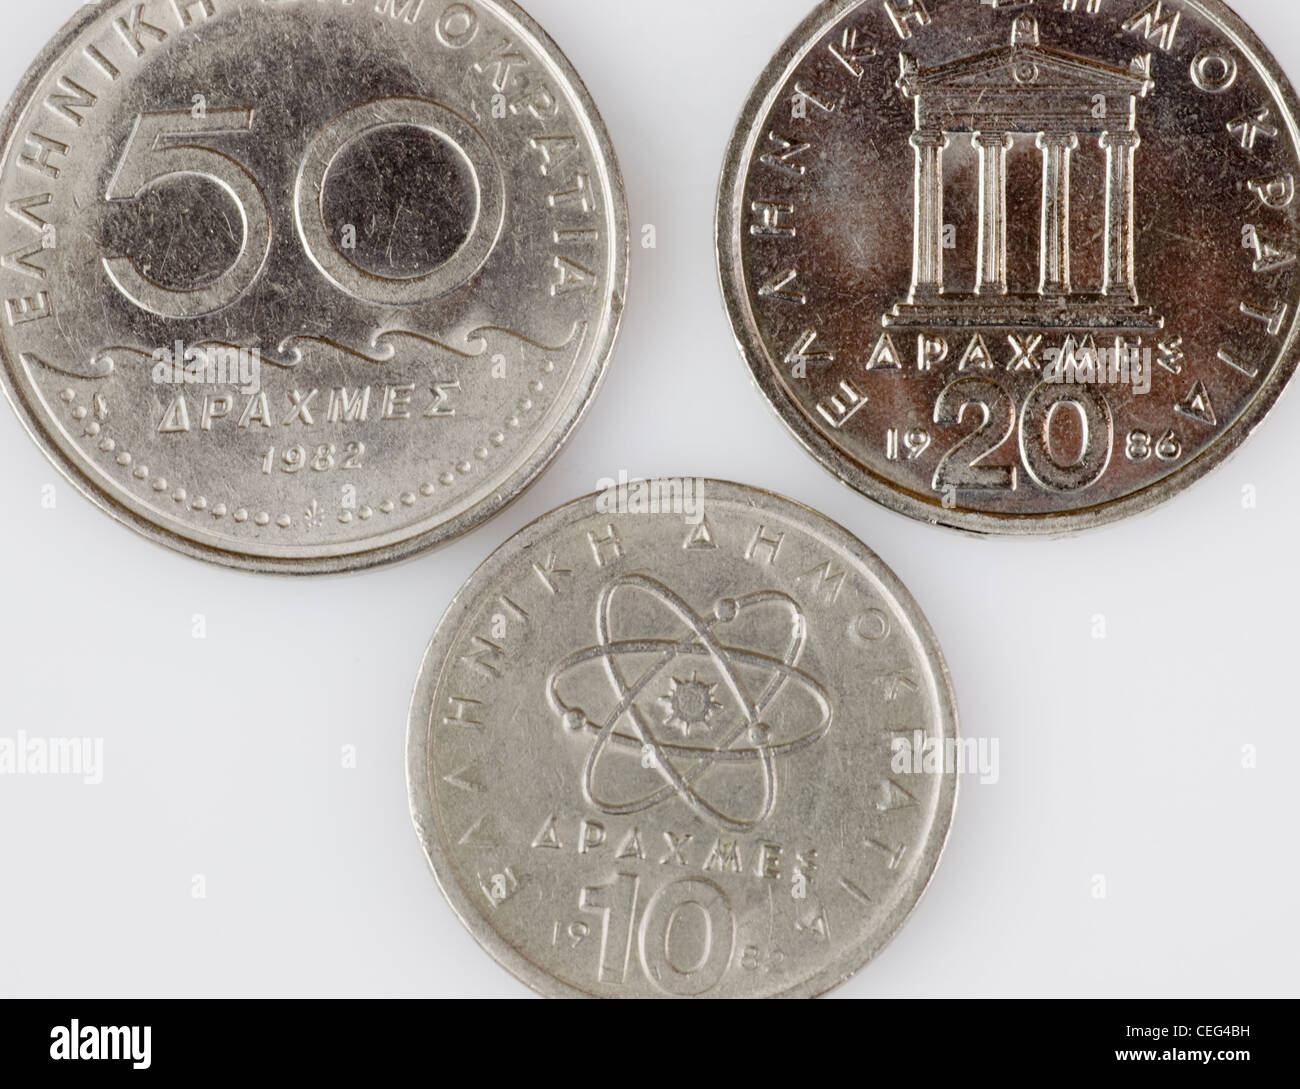 Drachma, former Greek currency coins - Stock Image